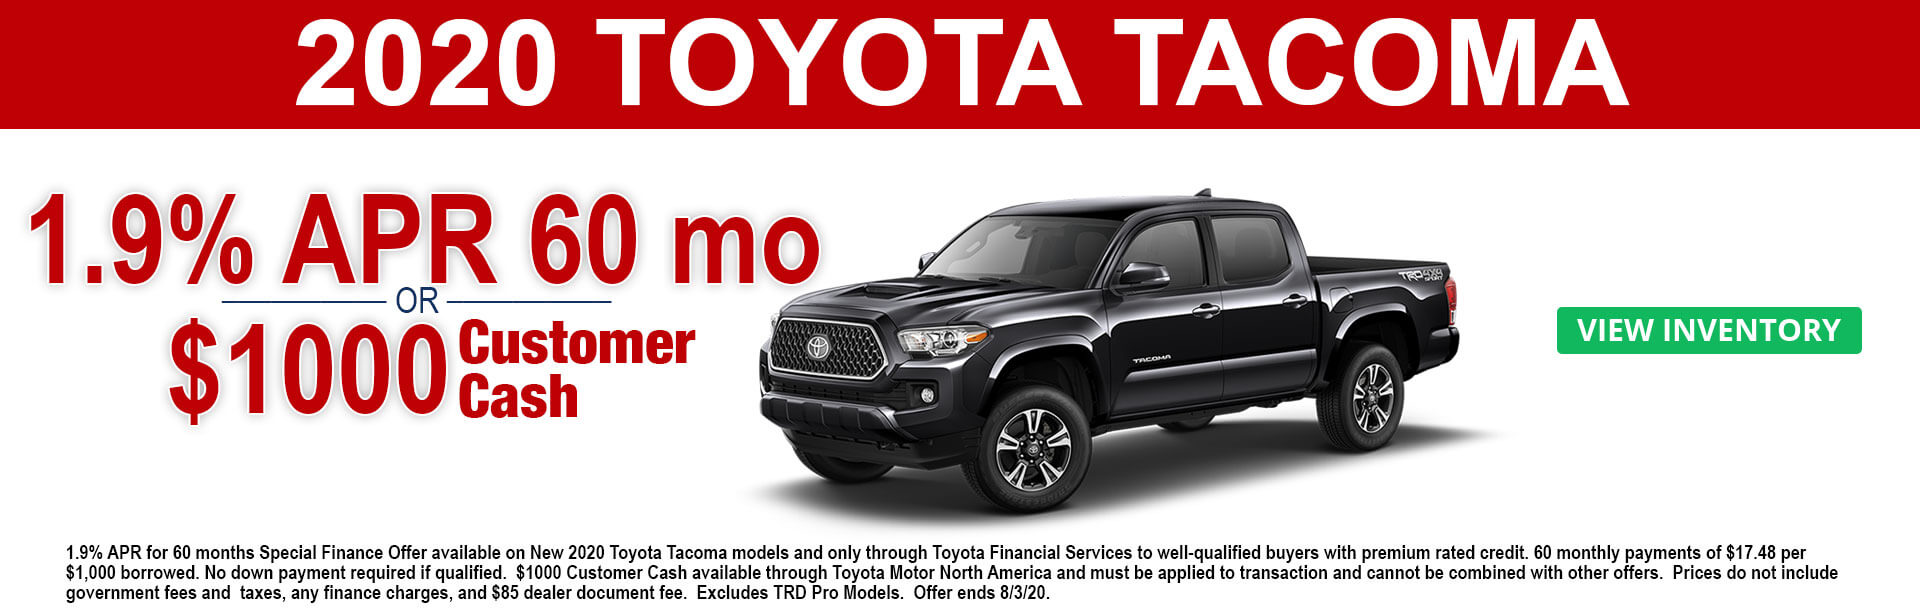 2020 Toyota Tacoma Cash and APR Offer